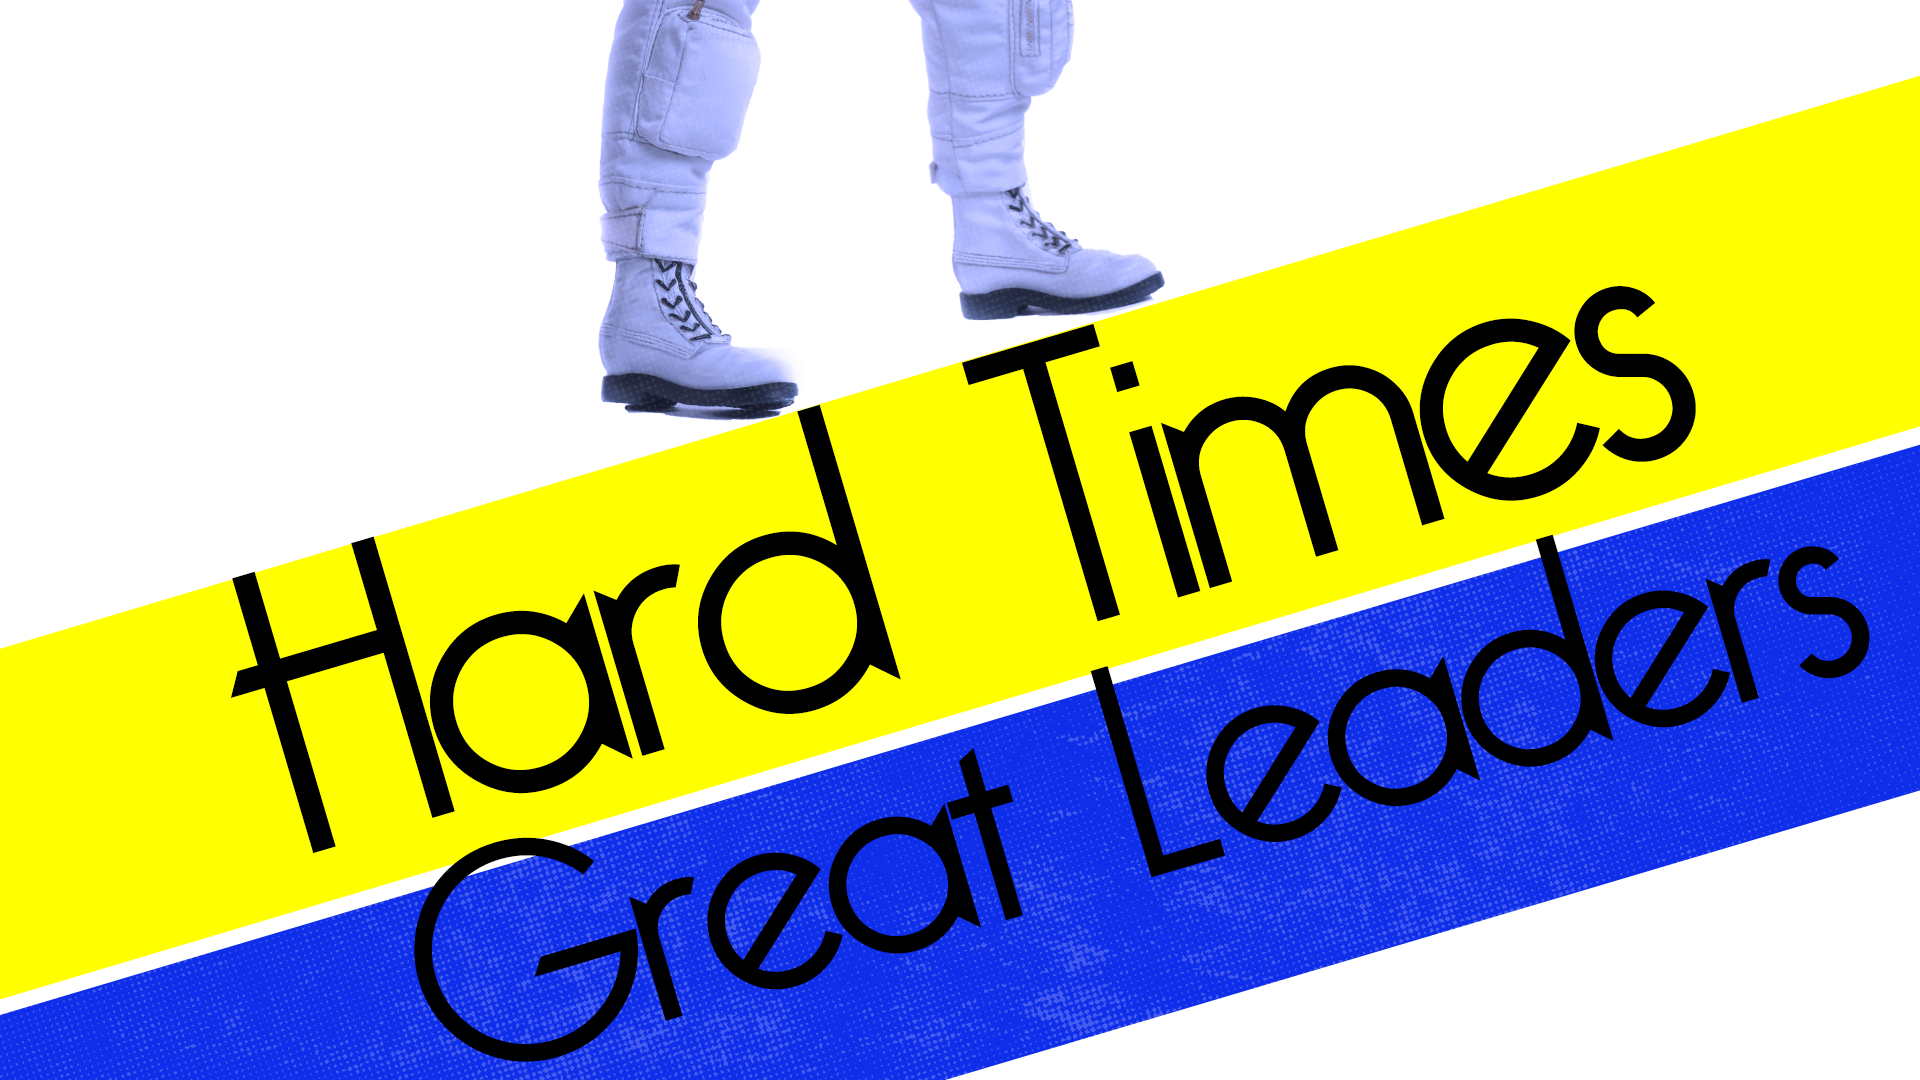 HARD TIMES, GREAT LEADERS